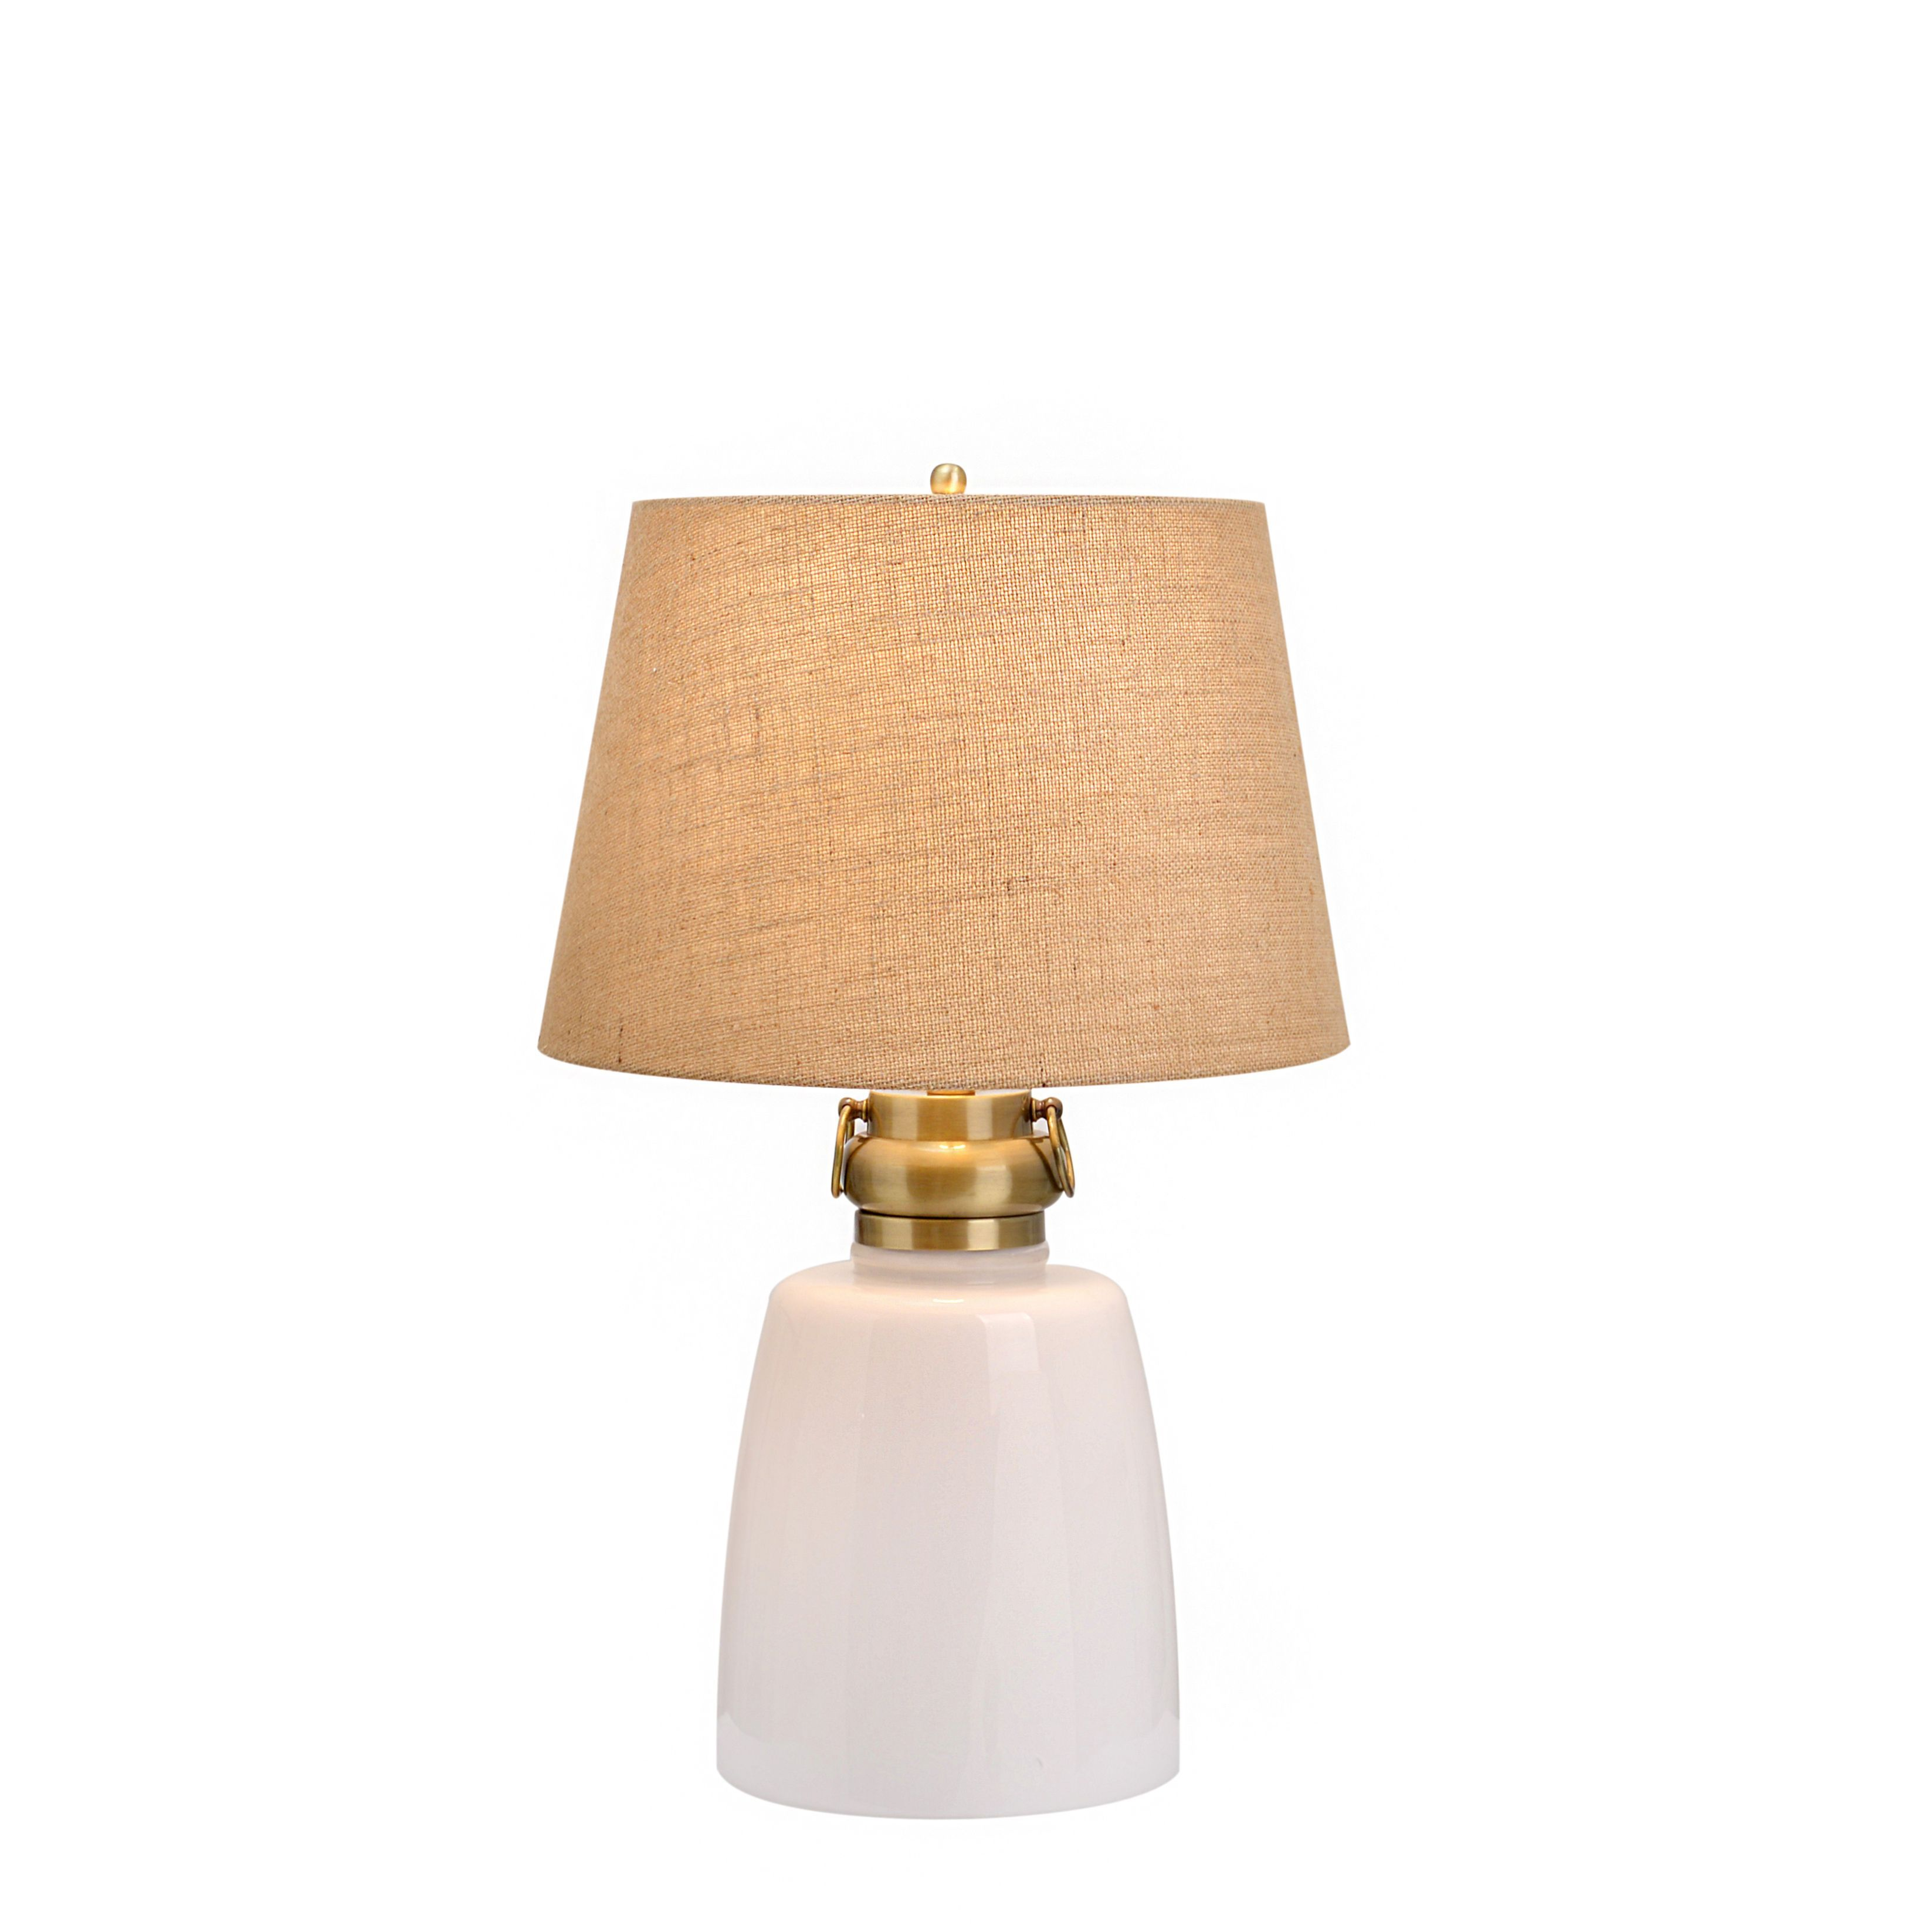 Good Catalina Sarasota 19929 001 4 Way 29 Inch White Milk Glass Table Lamp W  Nightlight, Light Burlap Mod Drum Shade, Bulb Included (Milk White Glass U0026  Antique ... Great Pictures